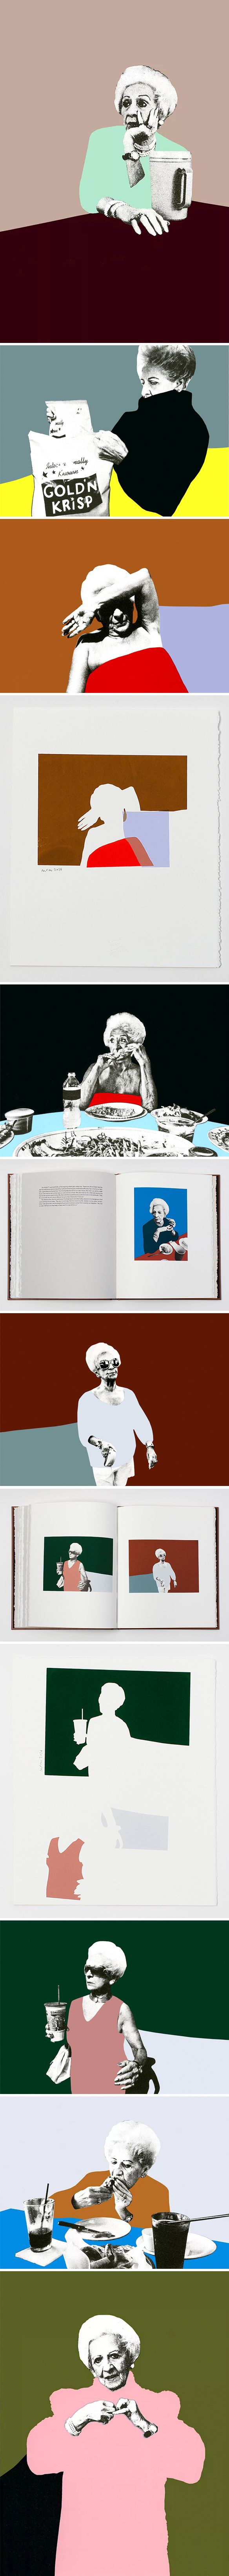 Prints/lim. edition book by Michelle Maguire